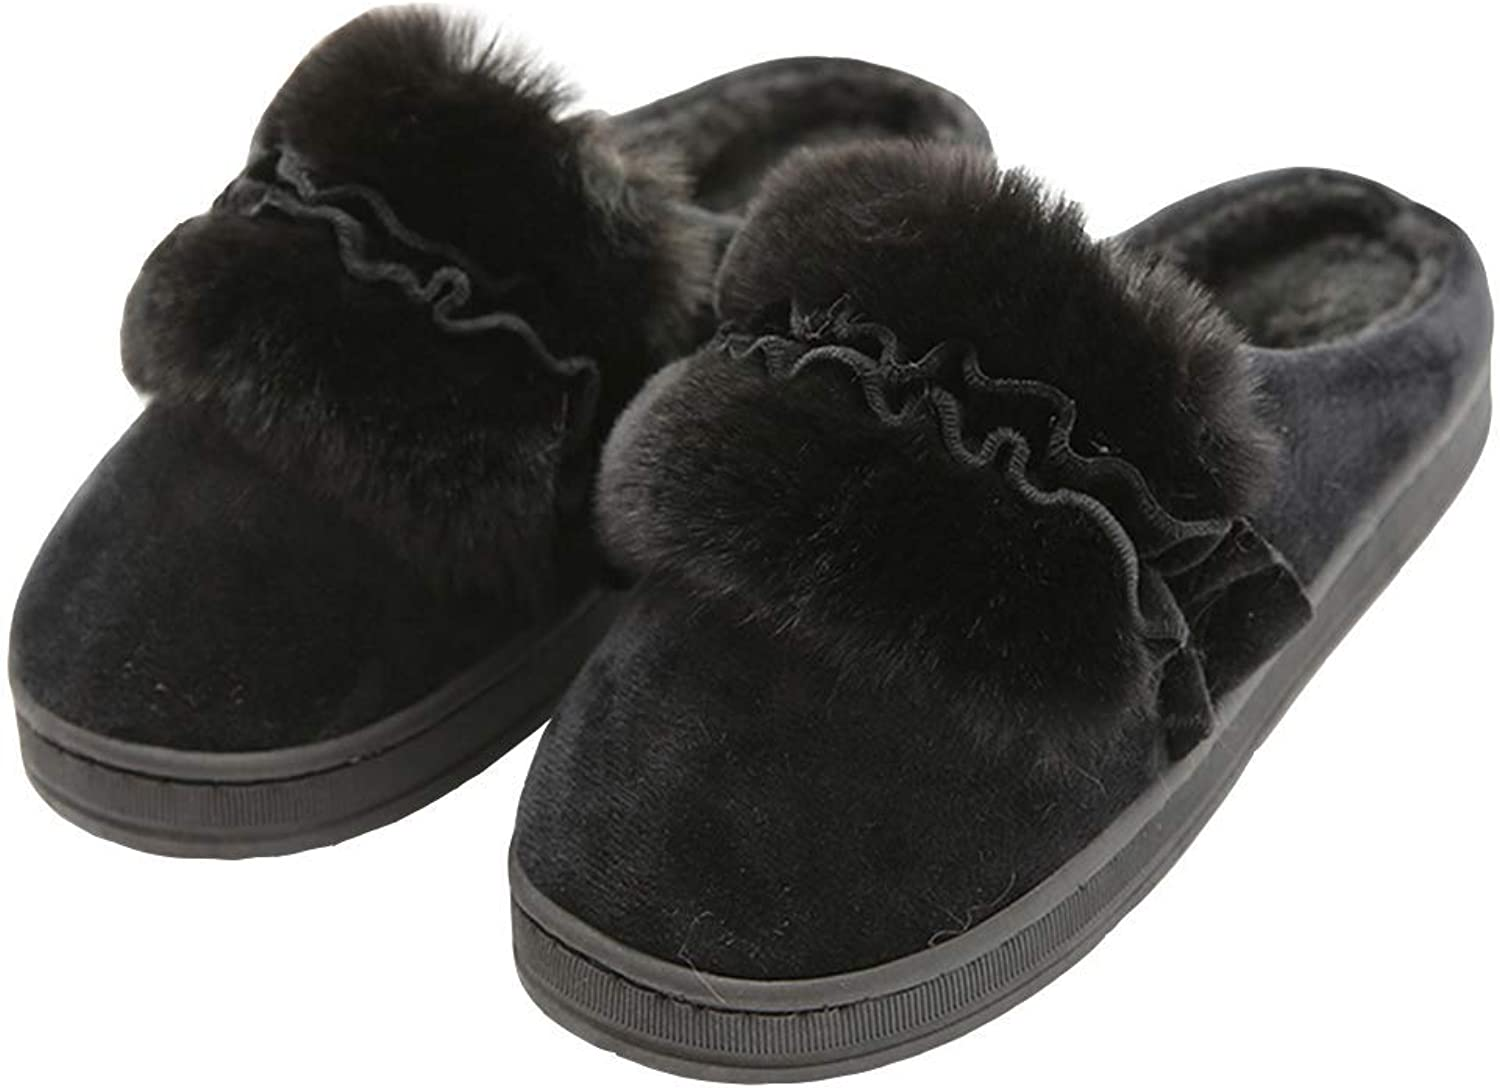 Winter Women Slippers Solid color Casual Cotton Warm Home Anti-Slip Flat Plush Indoor shoes(Can Be Worn Outside)